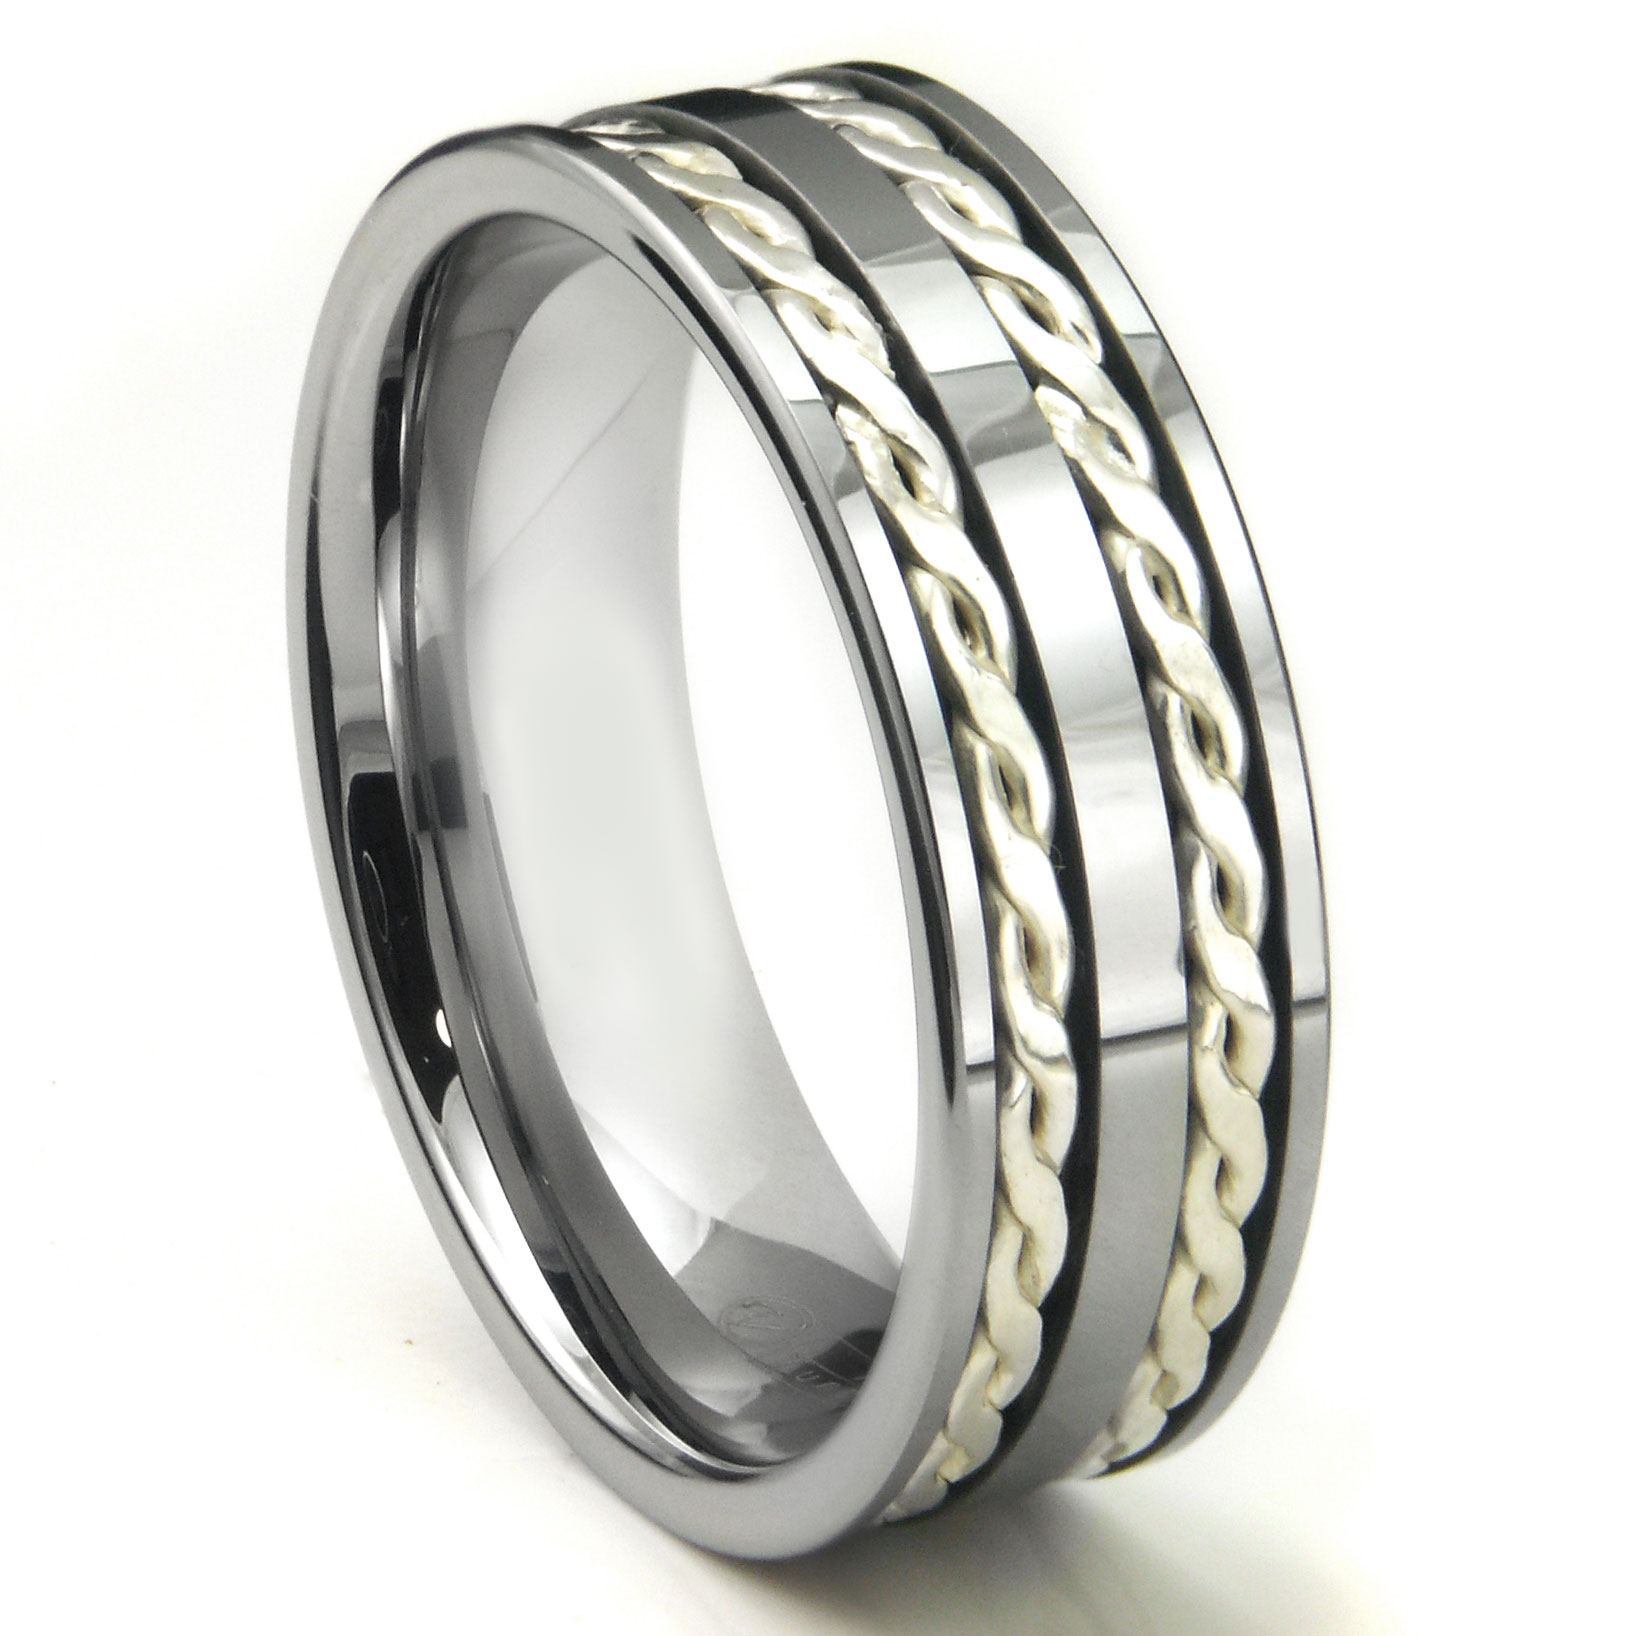 a silver mens northernroyal rings band tungsten interior wedding with brushed black ring copy design products dome